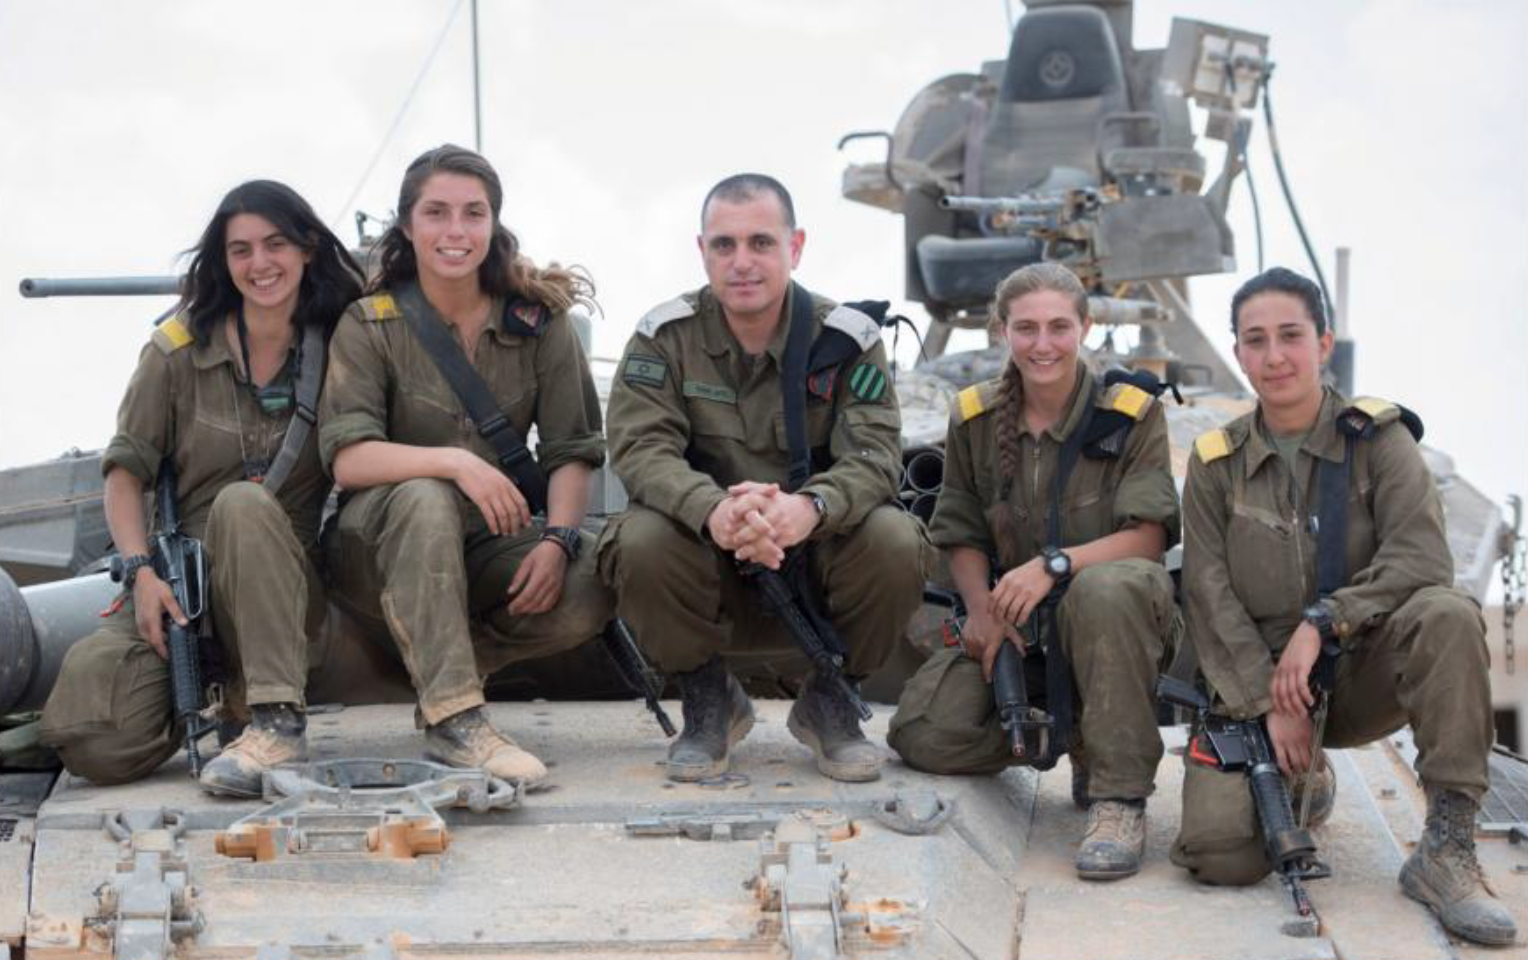 Military Service in Israel, Oct. 10